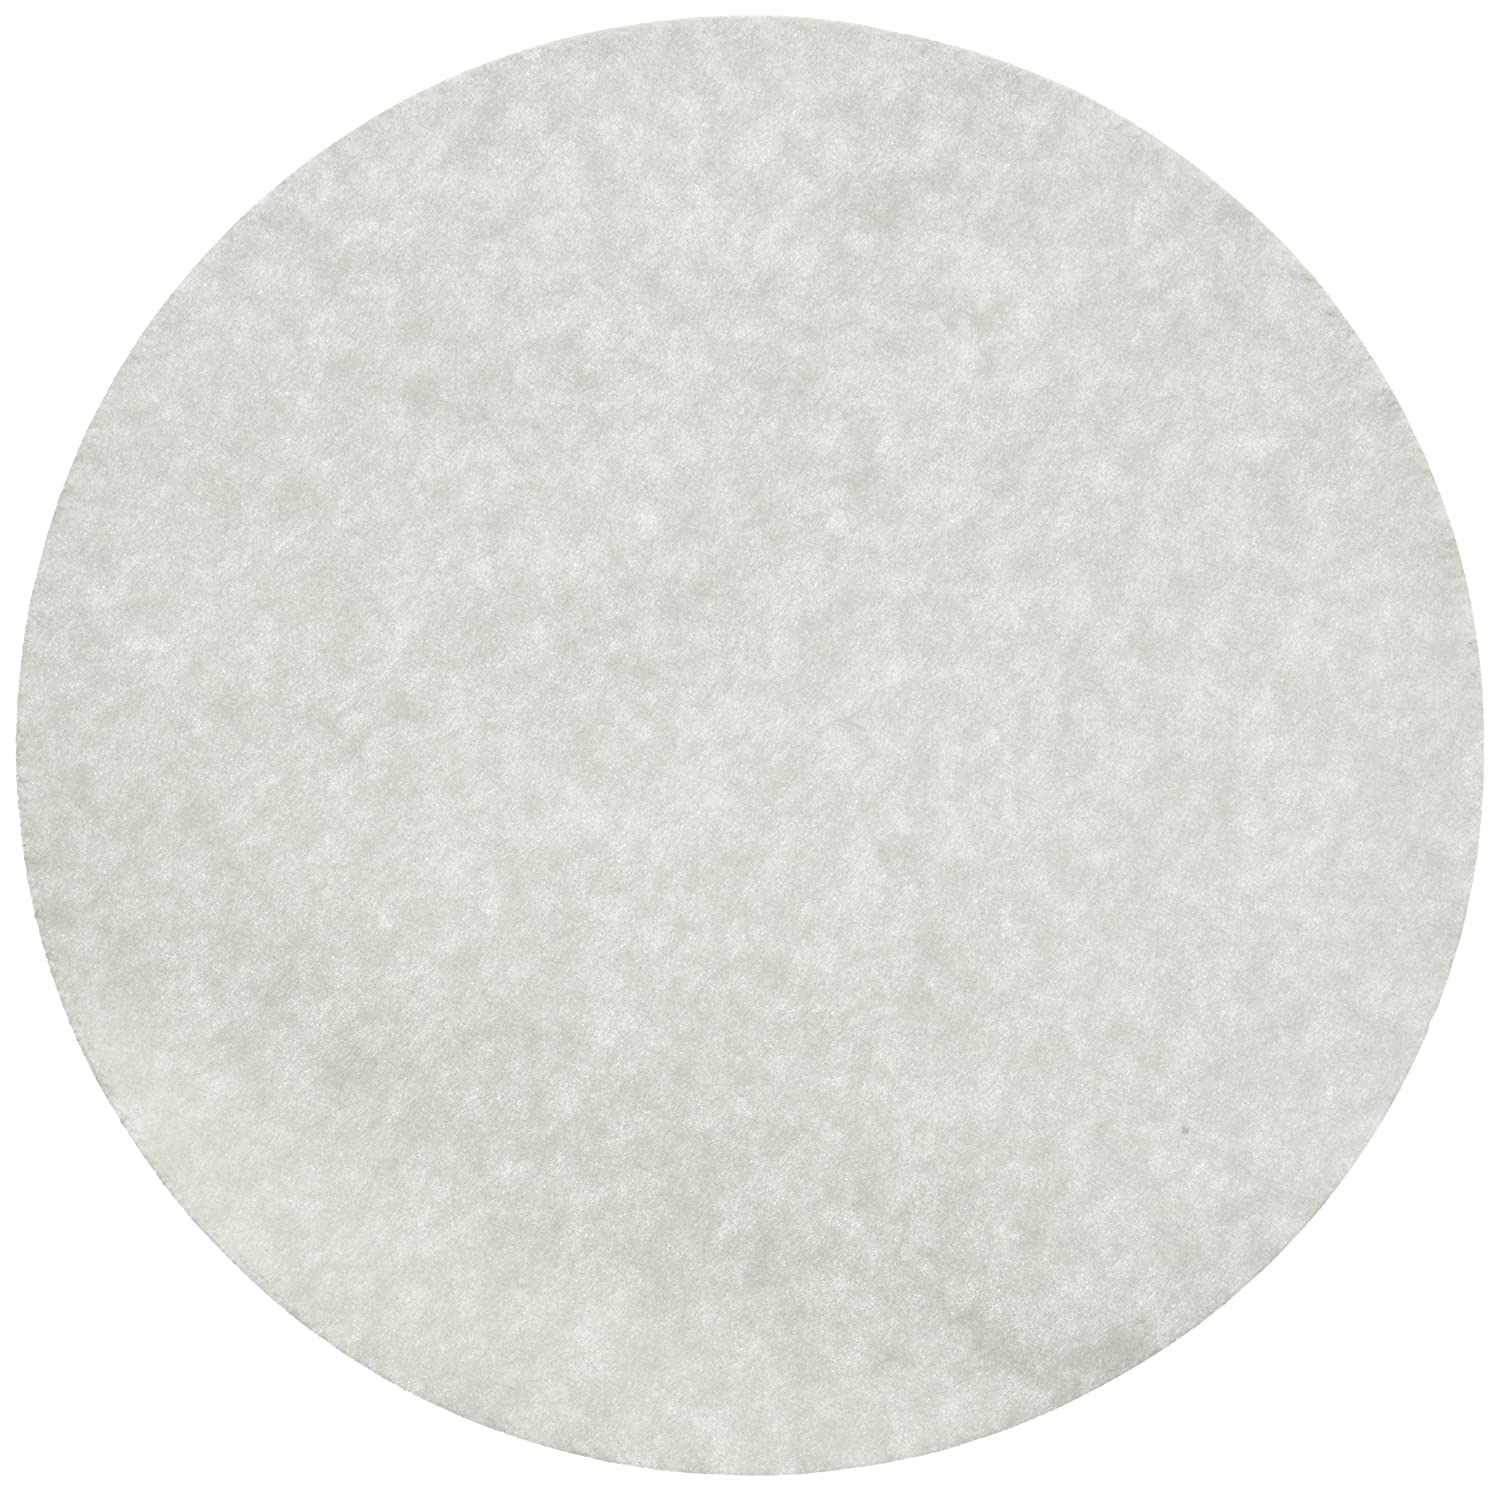 White 18 Length 9.7 Width Pack of 100 2.3 Height Roylco 96203 Pre-Cut Circle Color Diffusing Paper